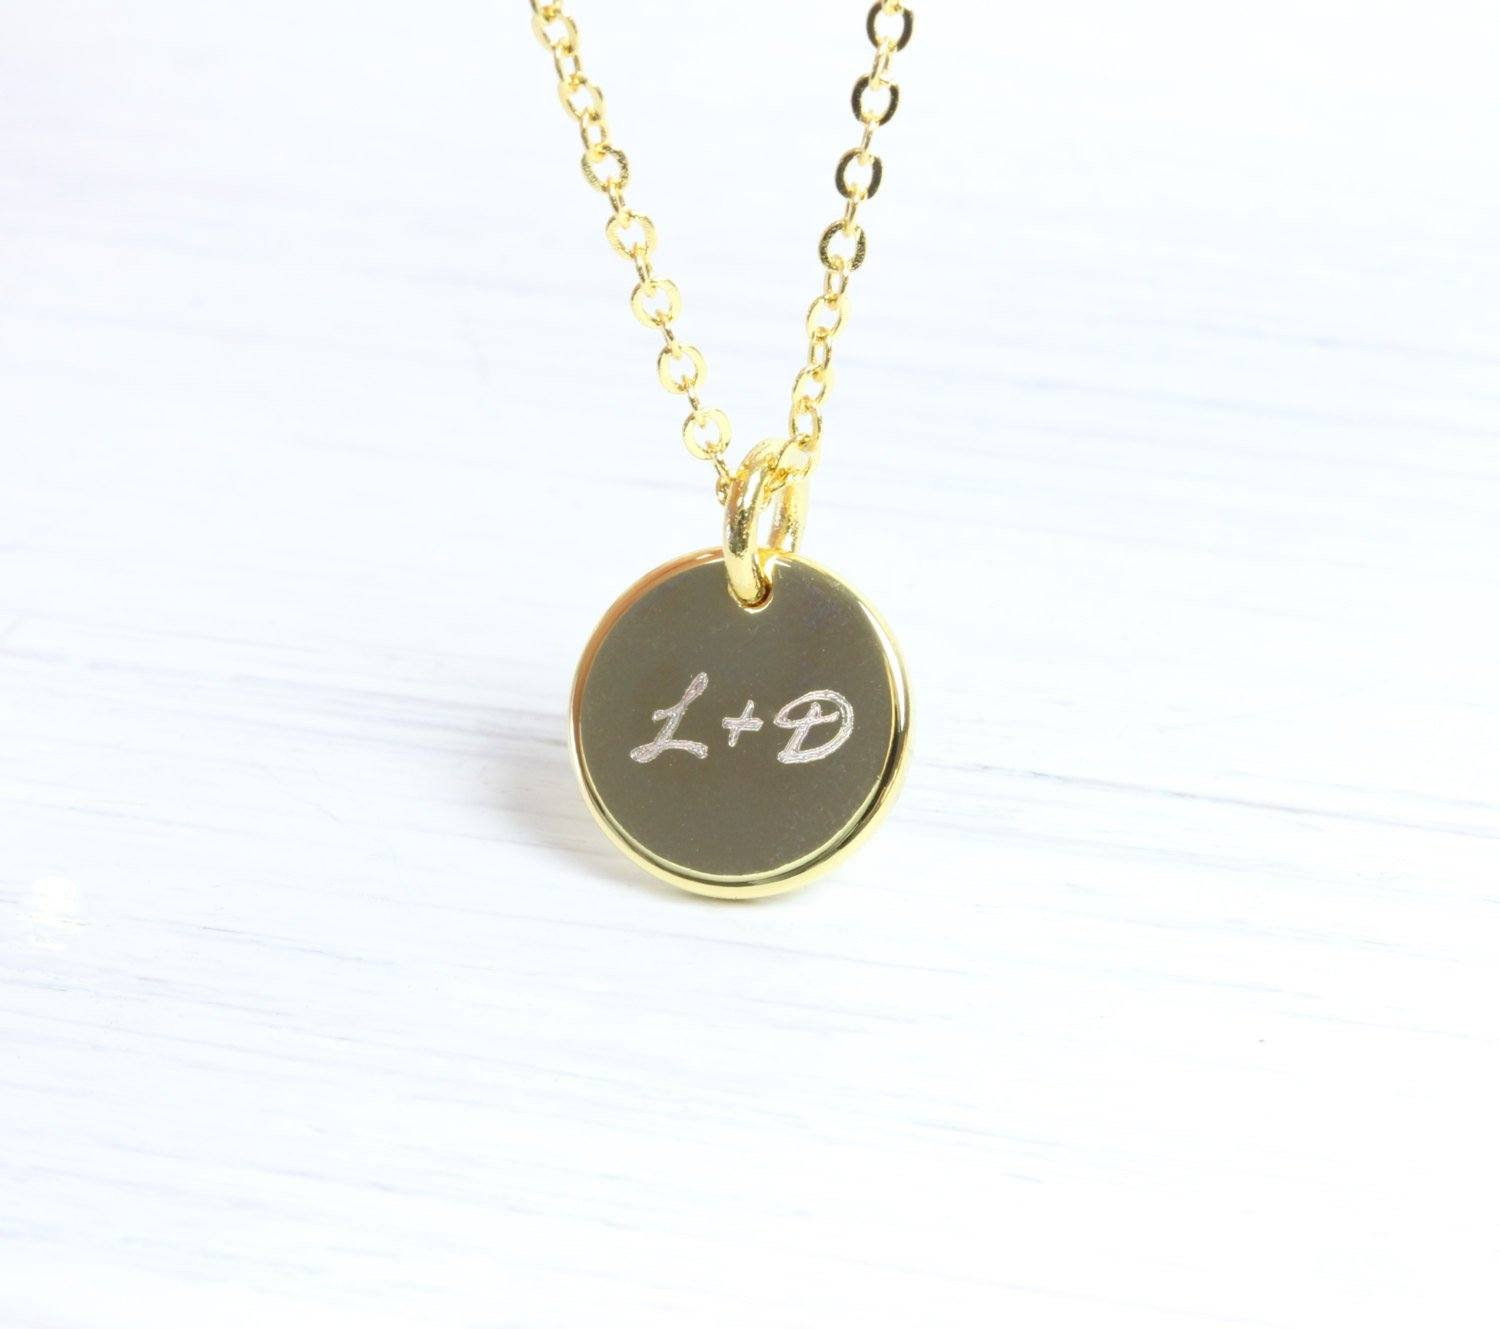 Personalized Gold Name Initial Monogram Necklace, Engraved Necklace, Gift for her, Custom, Christmas Bridesmaids Wedding